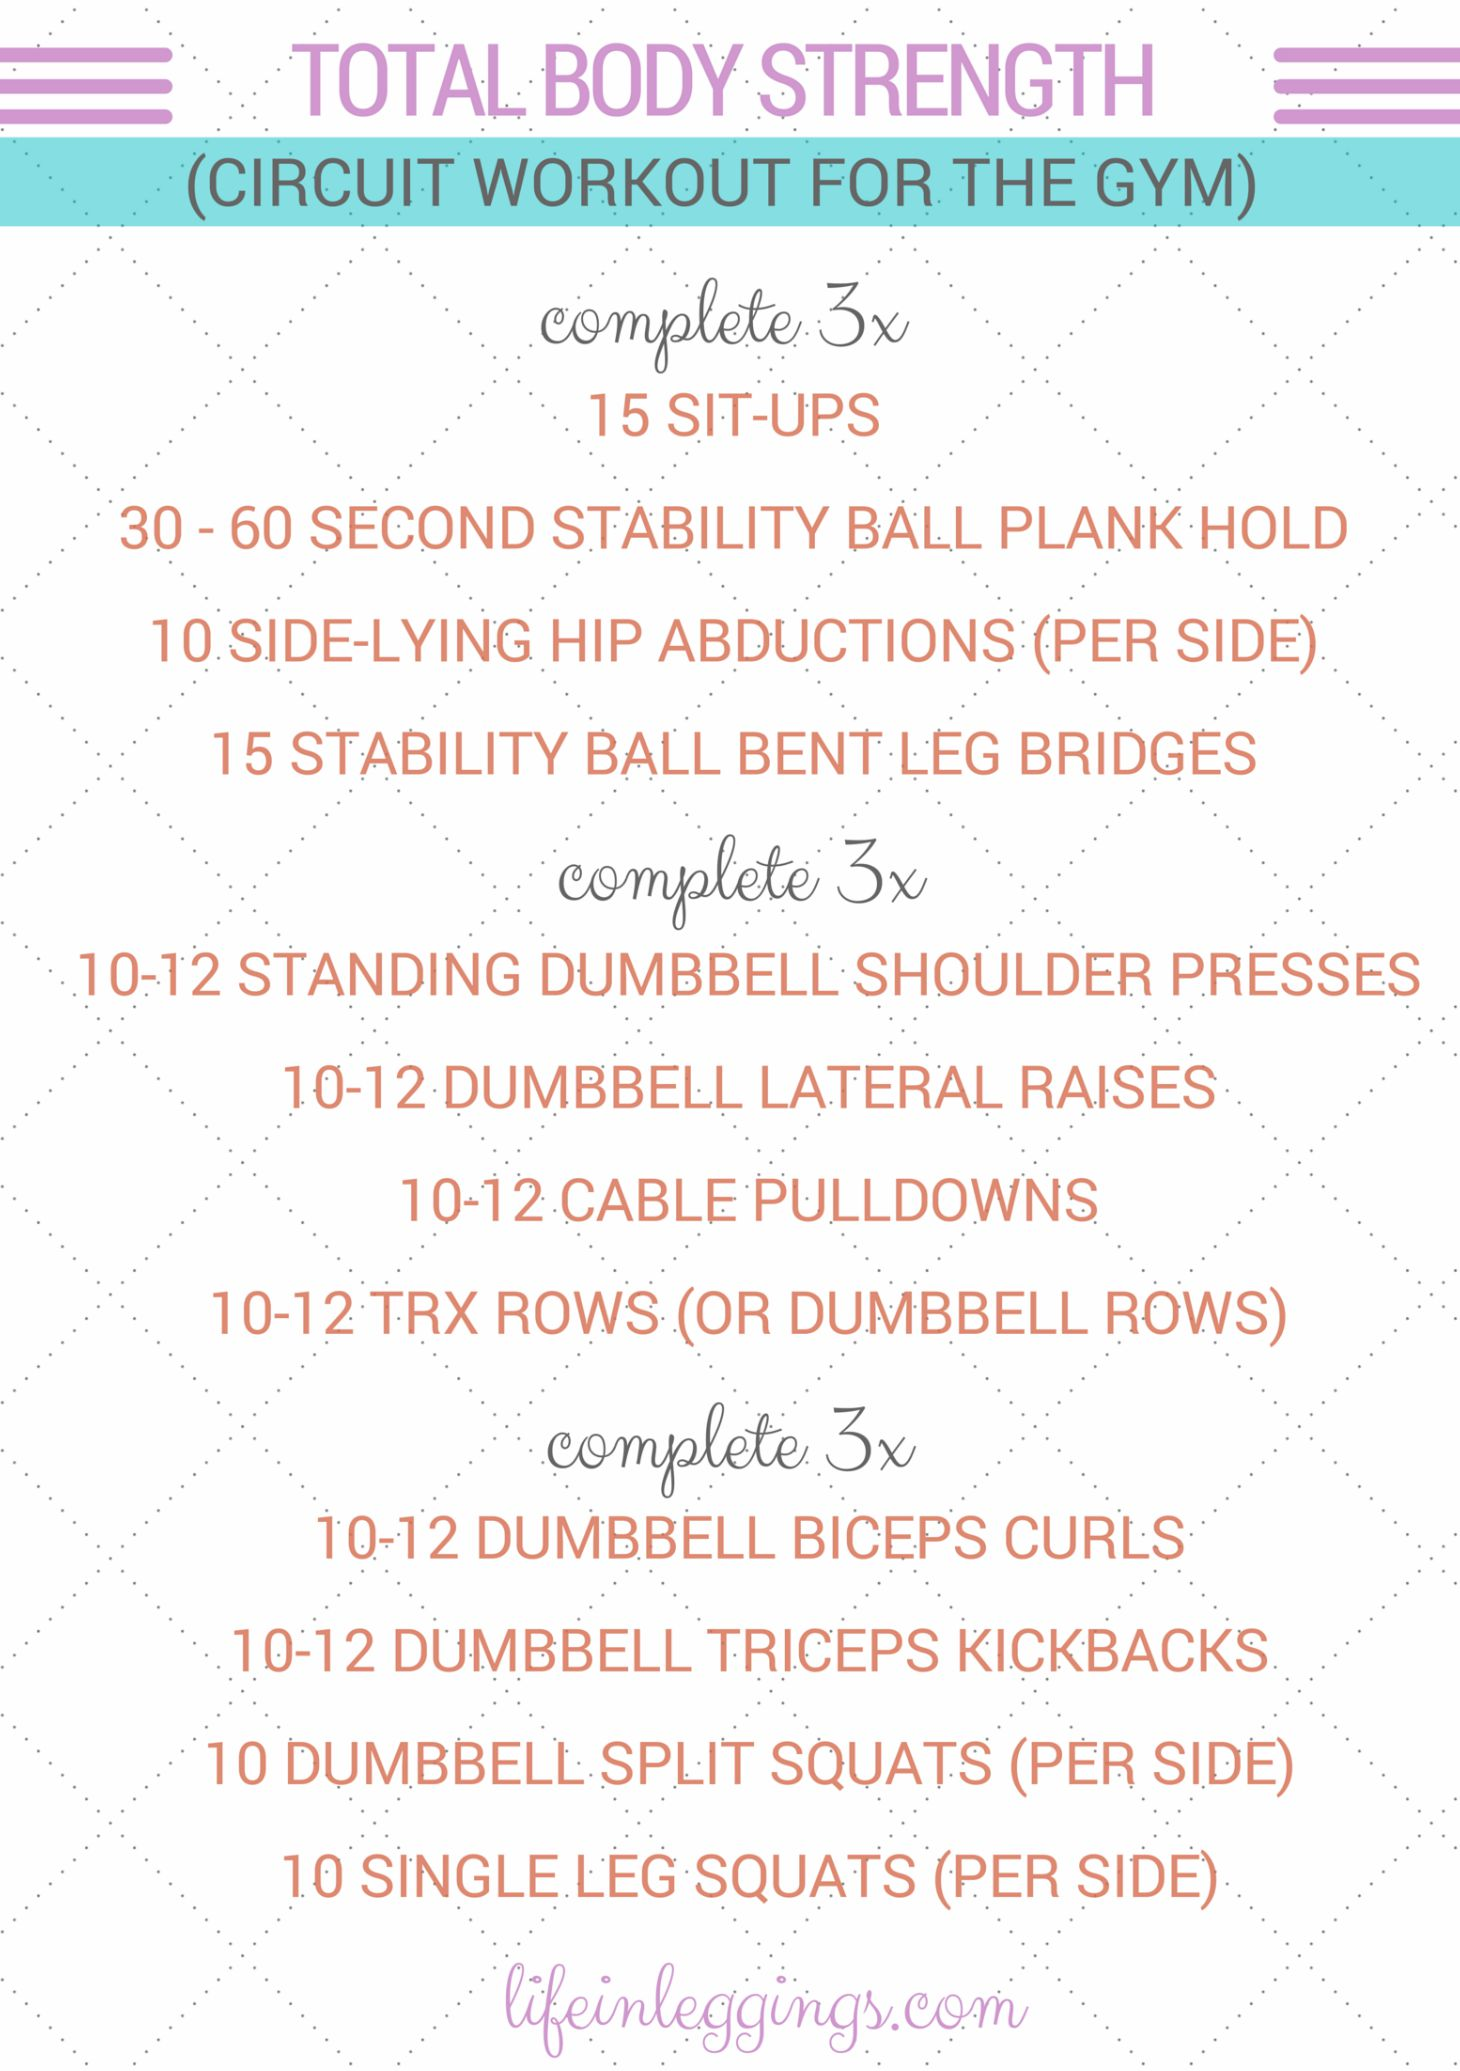 Total Body Strength Circuit Workout (for the gym) - Life In Leggings